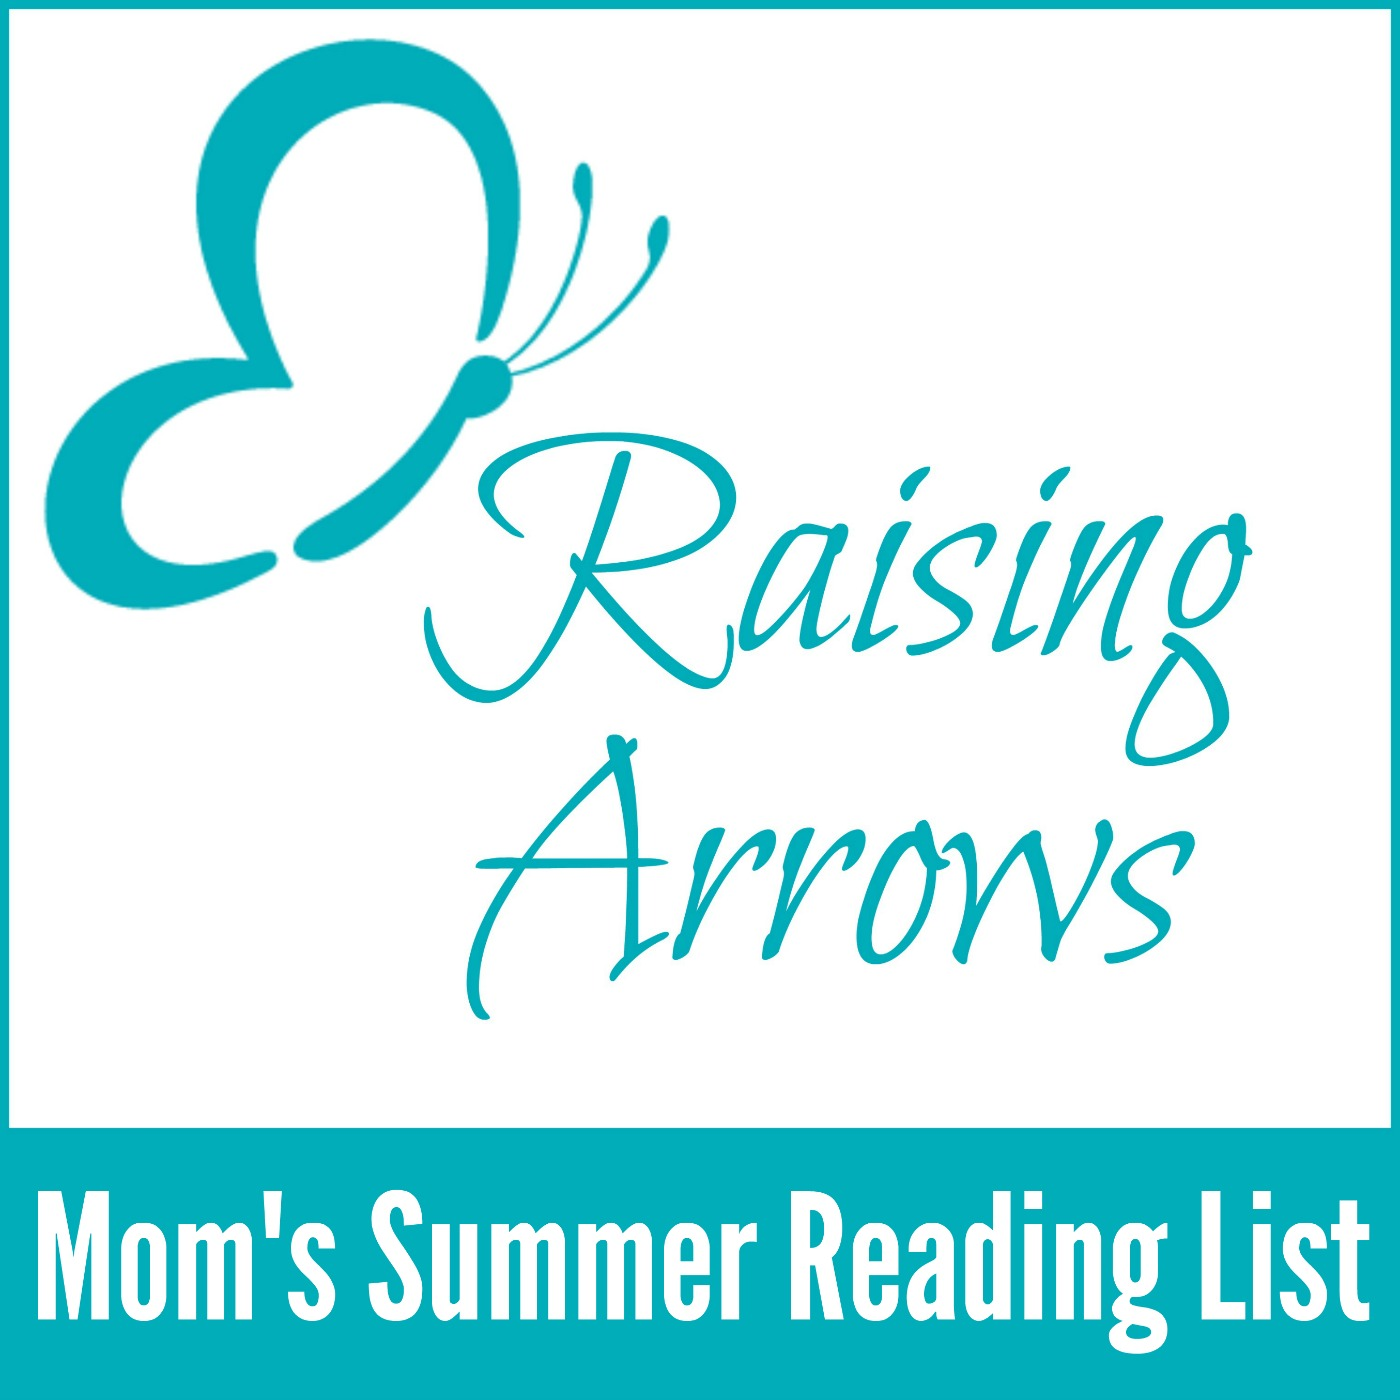 Mom's Summer Reading List – 008 Podcast